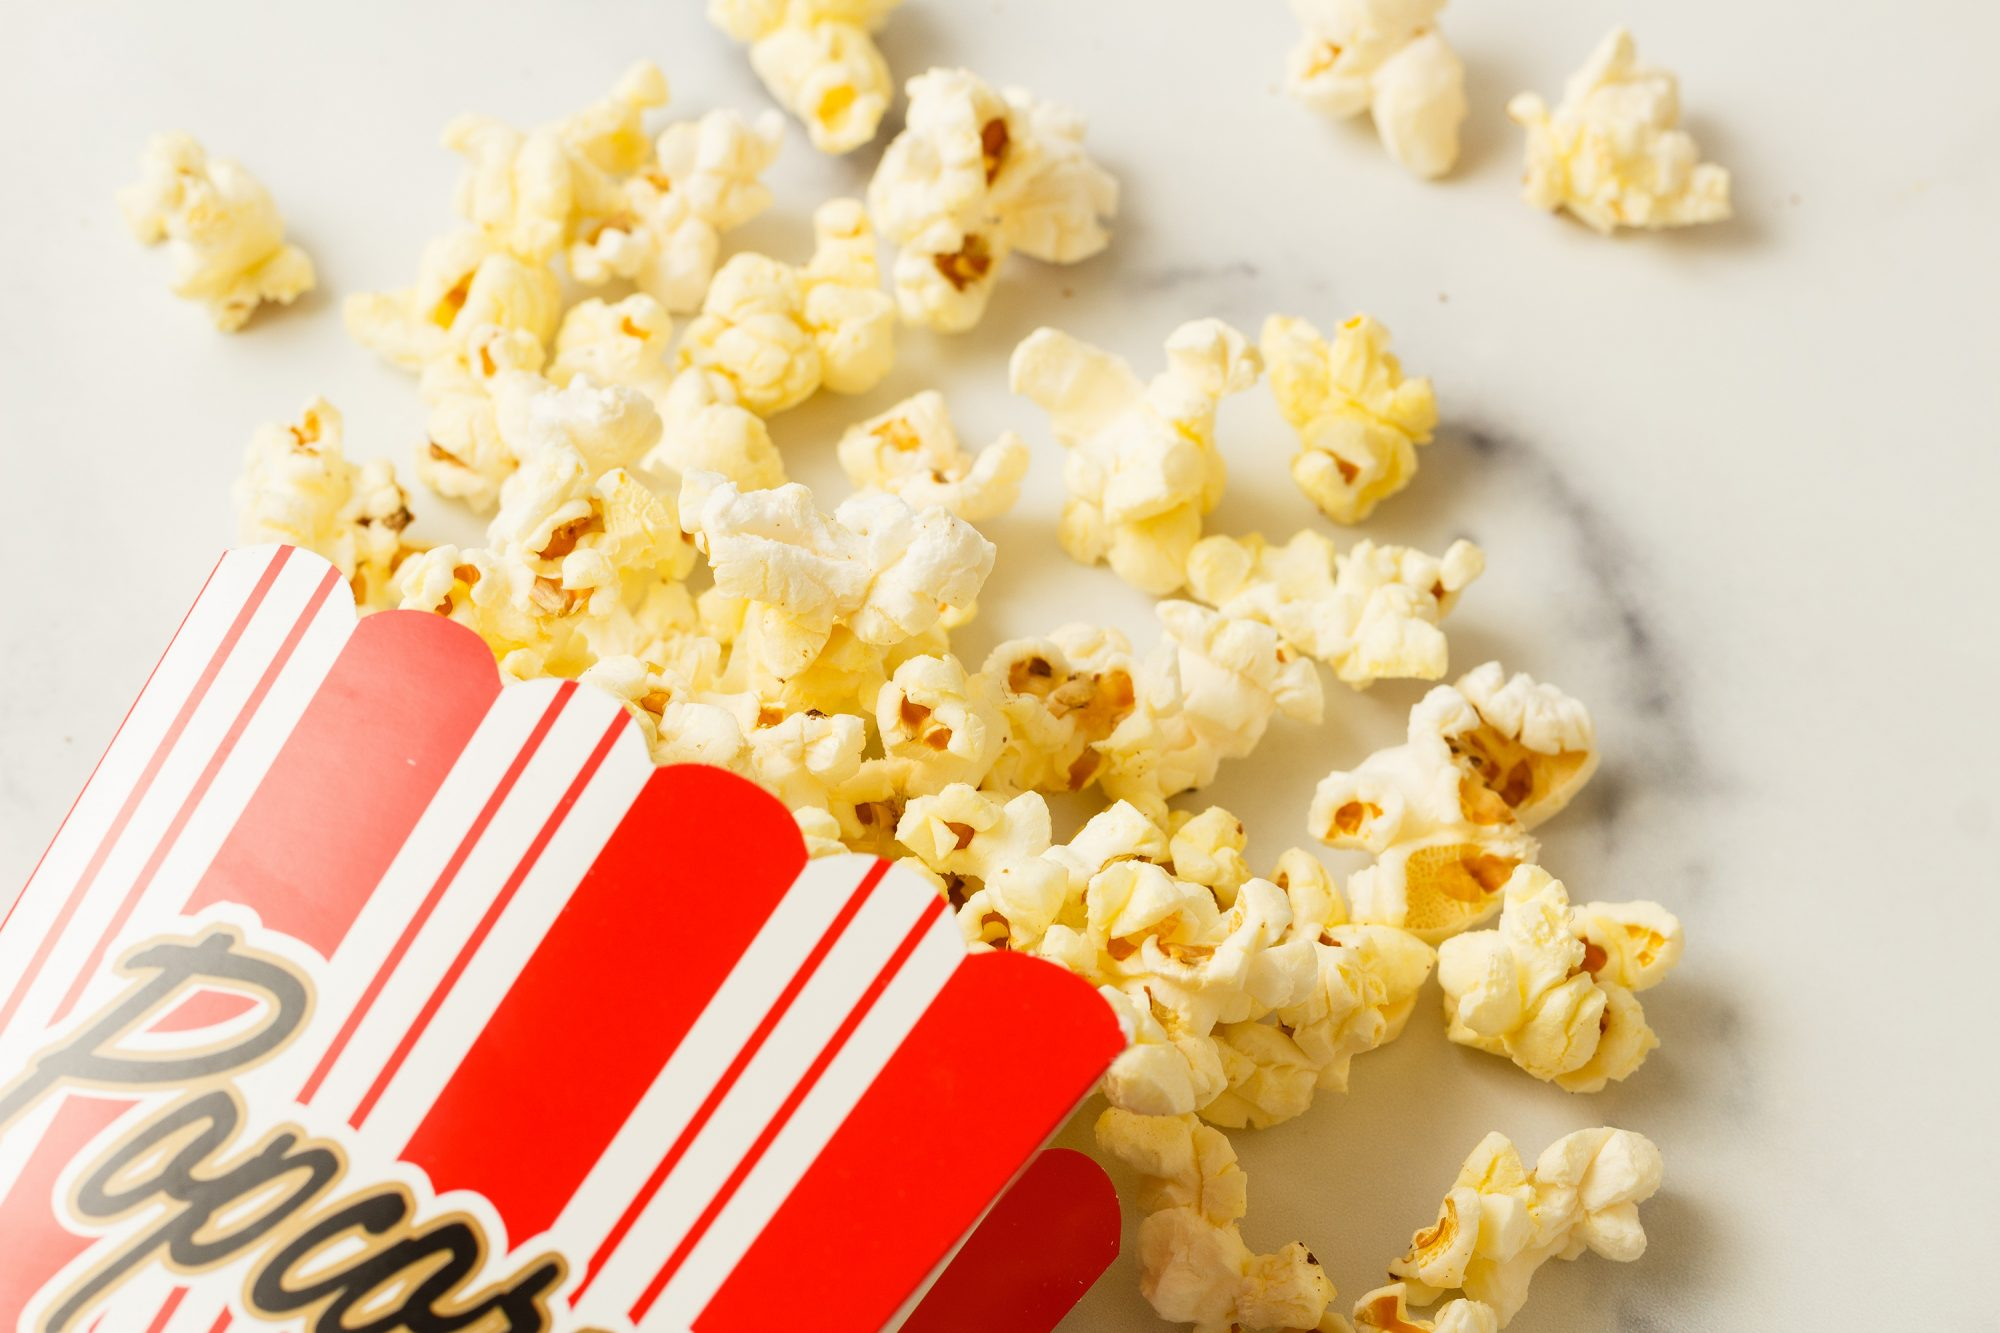 popcorn in a red striped box spilling out onto a marble counter